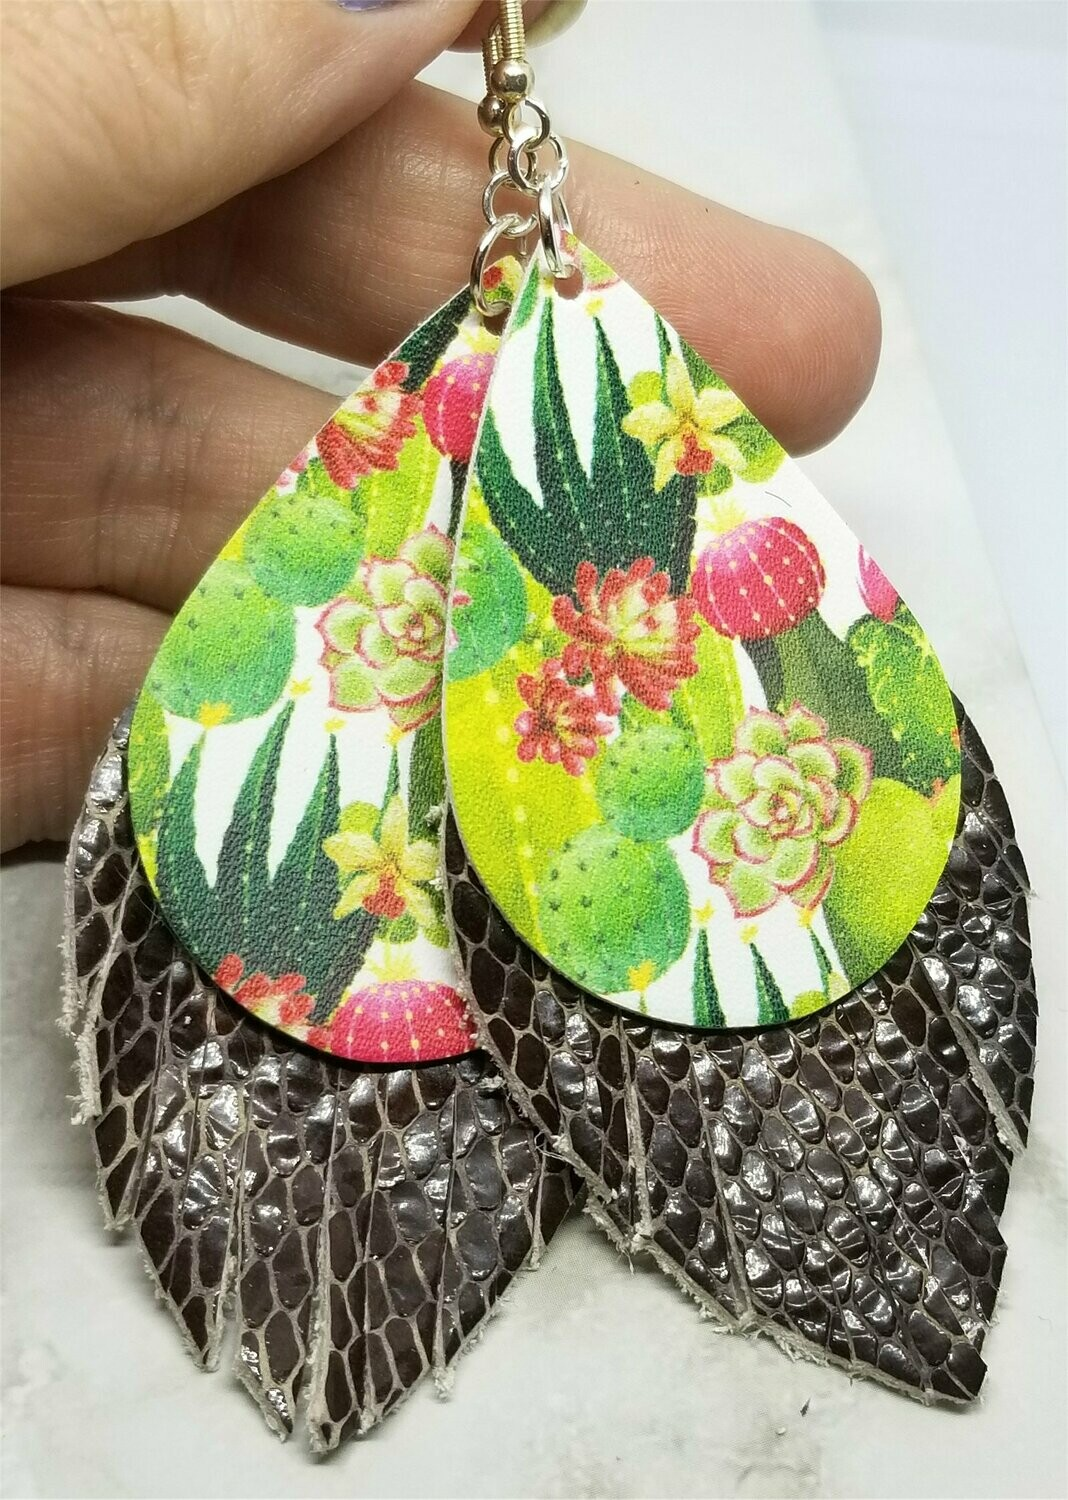 Cactus Faux Leather with Fringed Brown Scale Patterned Real Leather Earrings